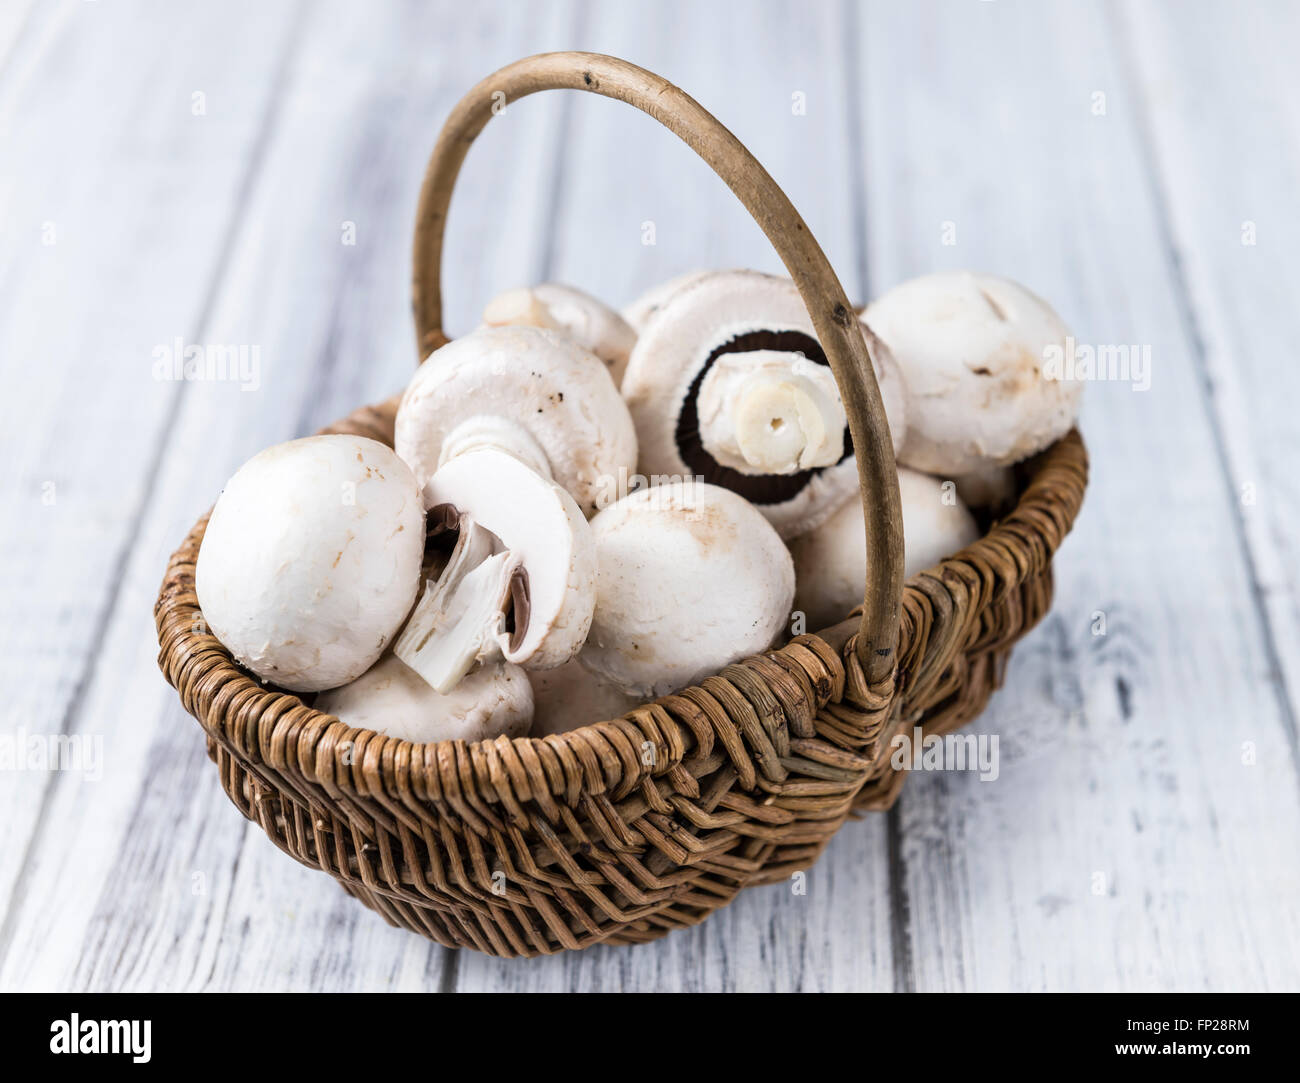 Portion of fresh white Mushrooms (selective focus) on wooden background - Stock Image